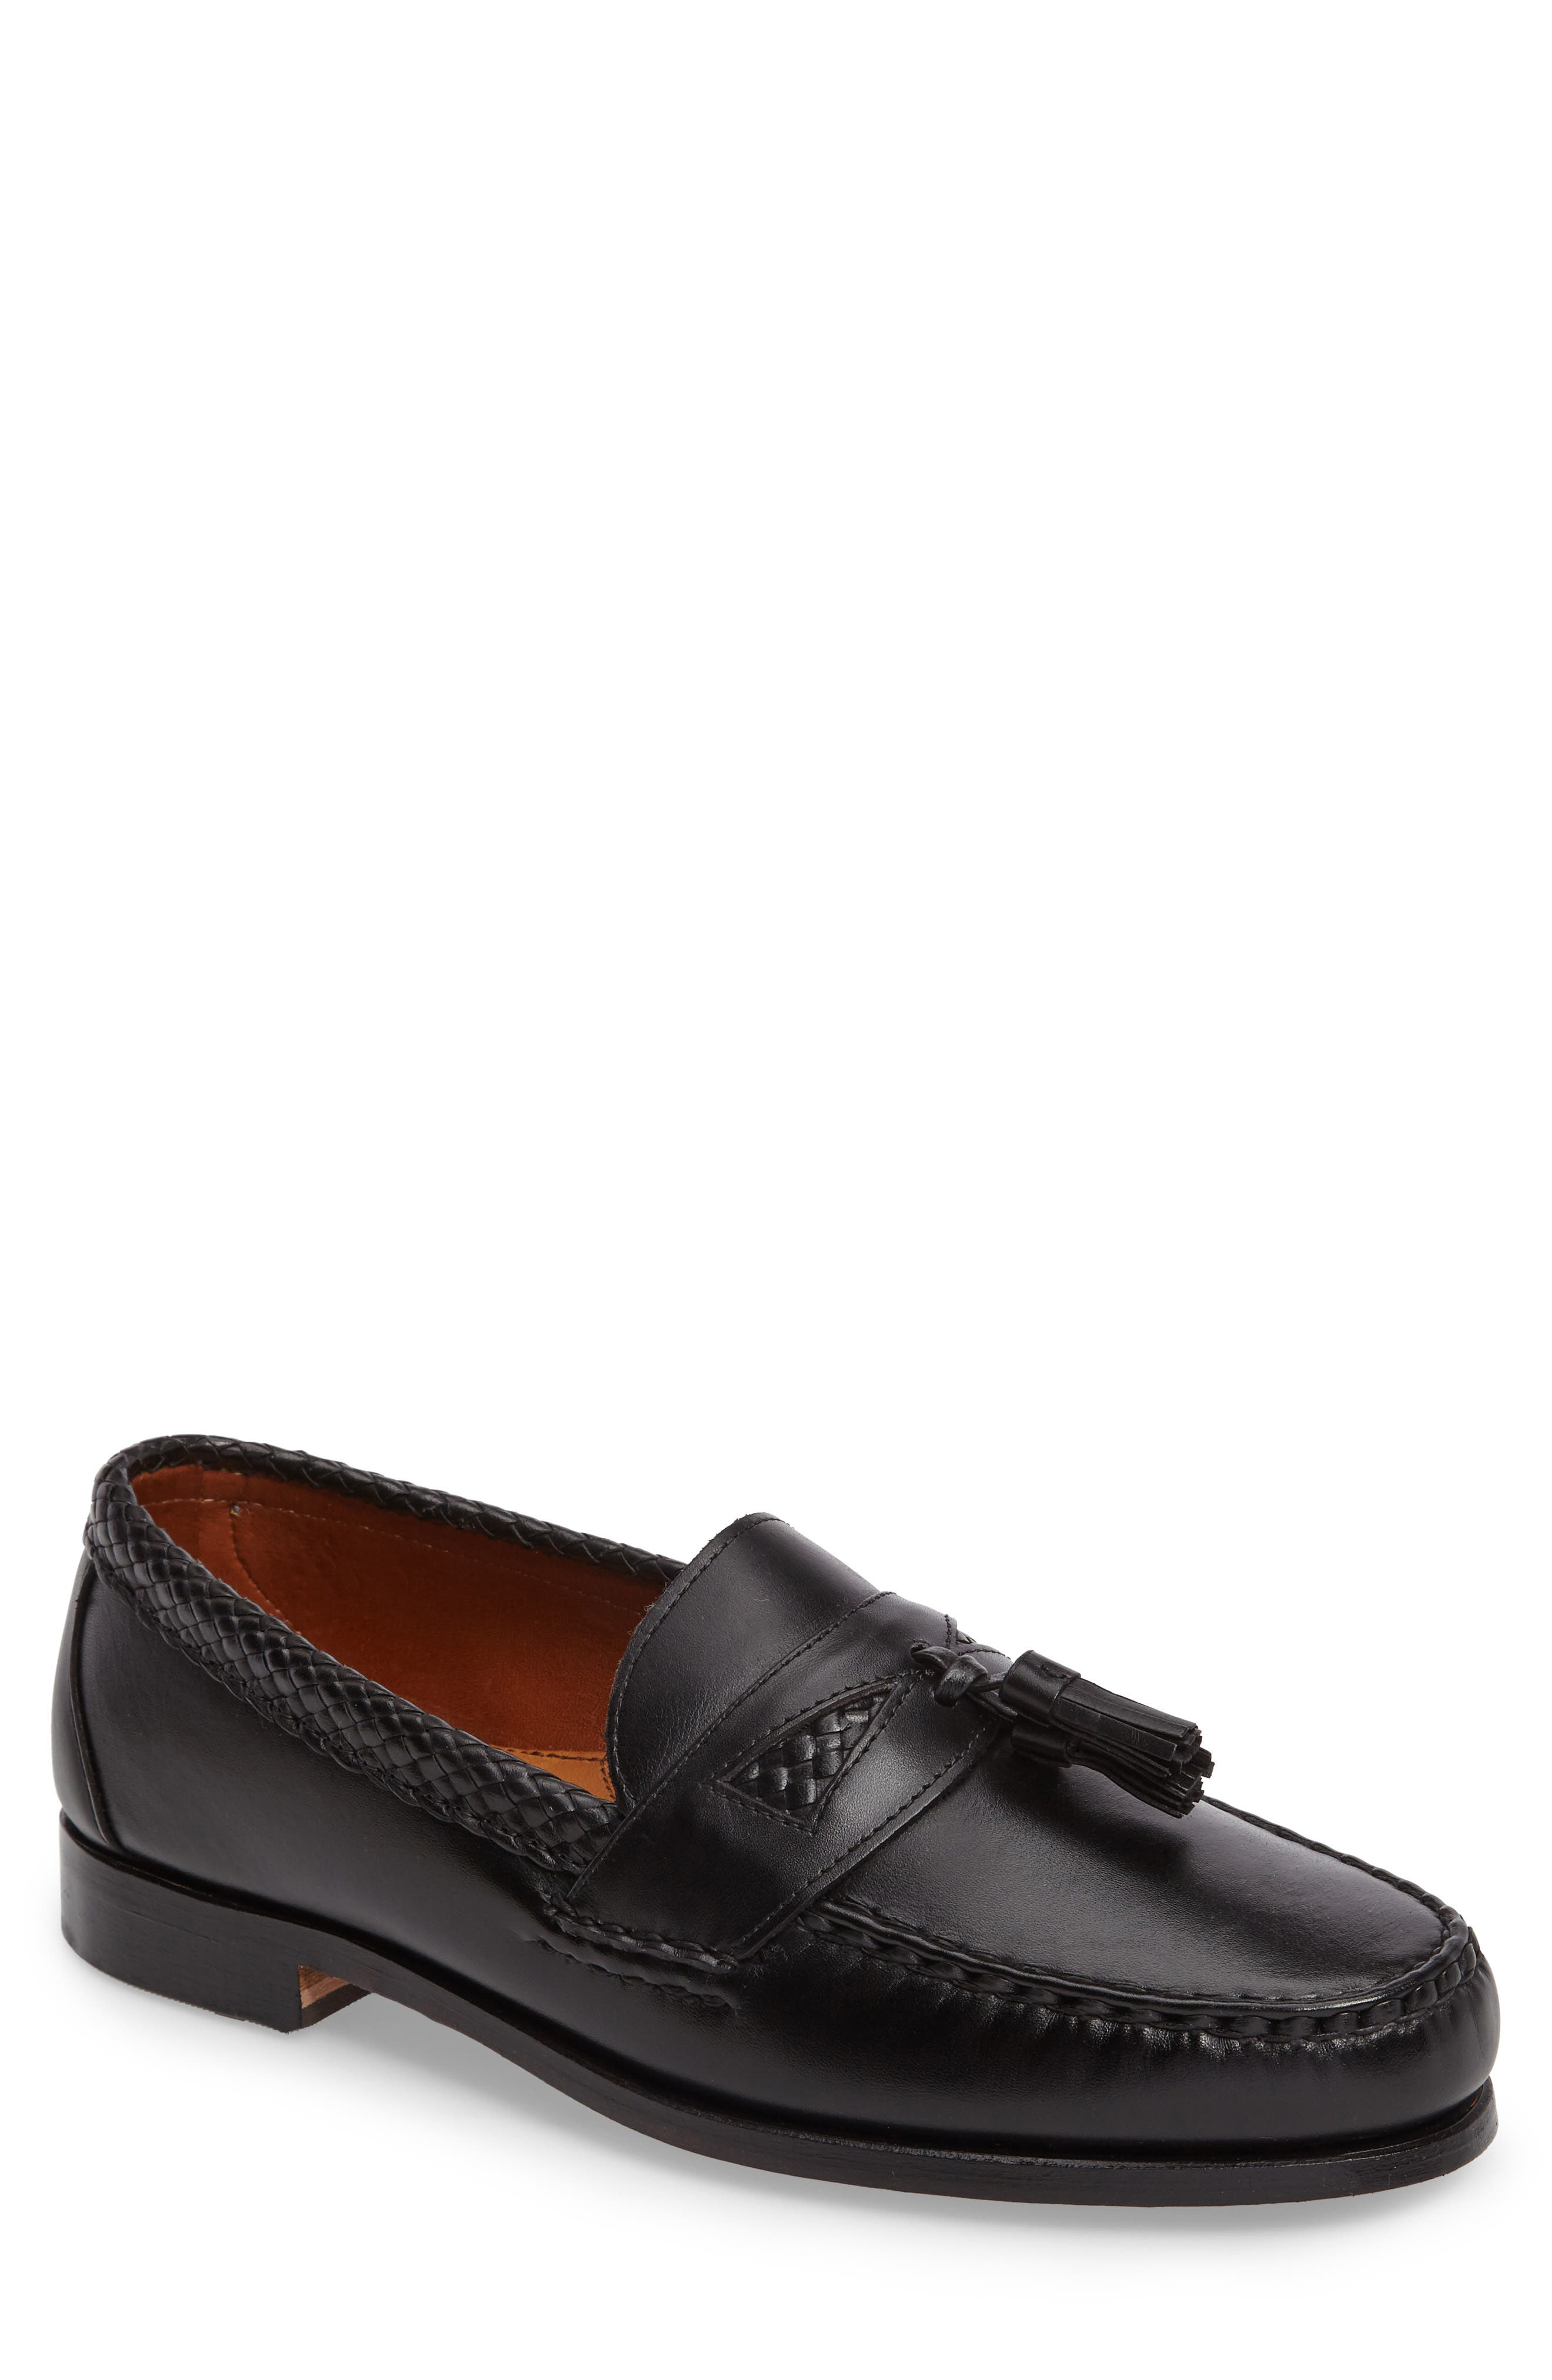 Allen Edmonds 'Maxfield' Loafer (Men)